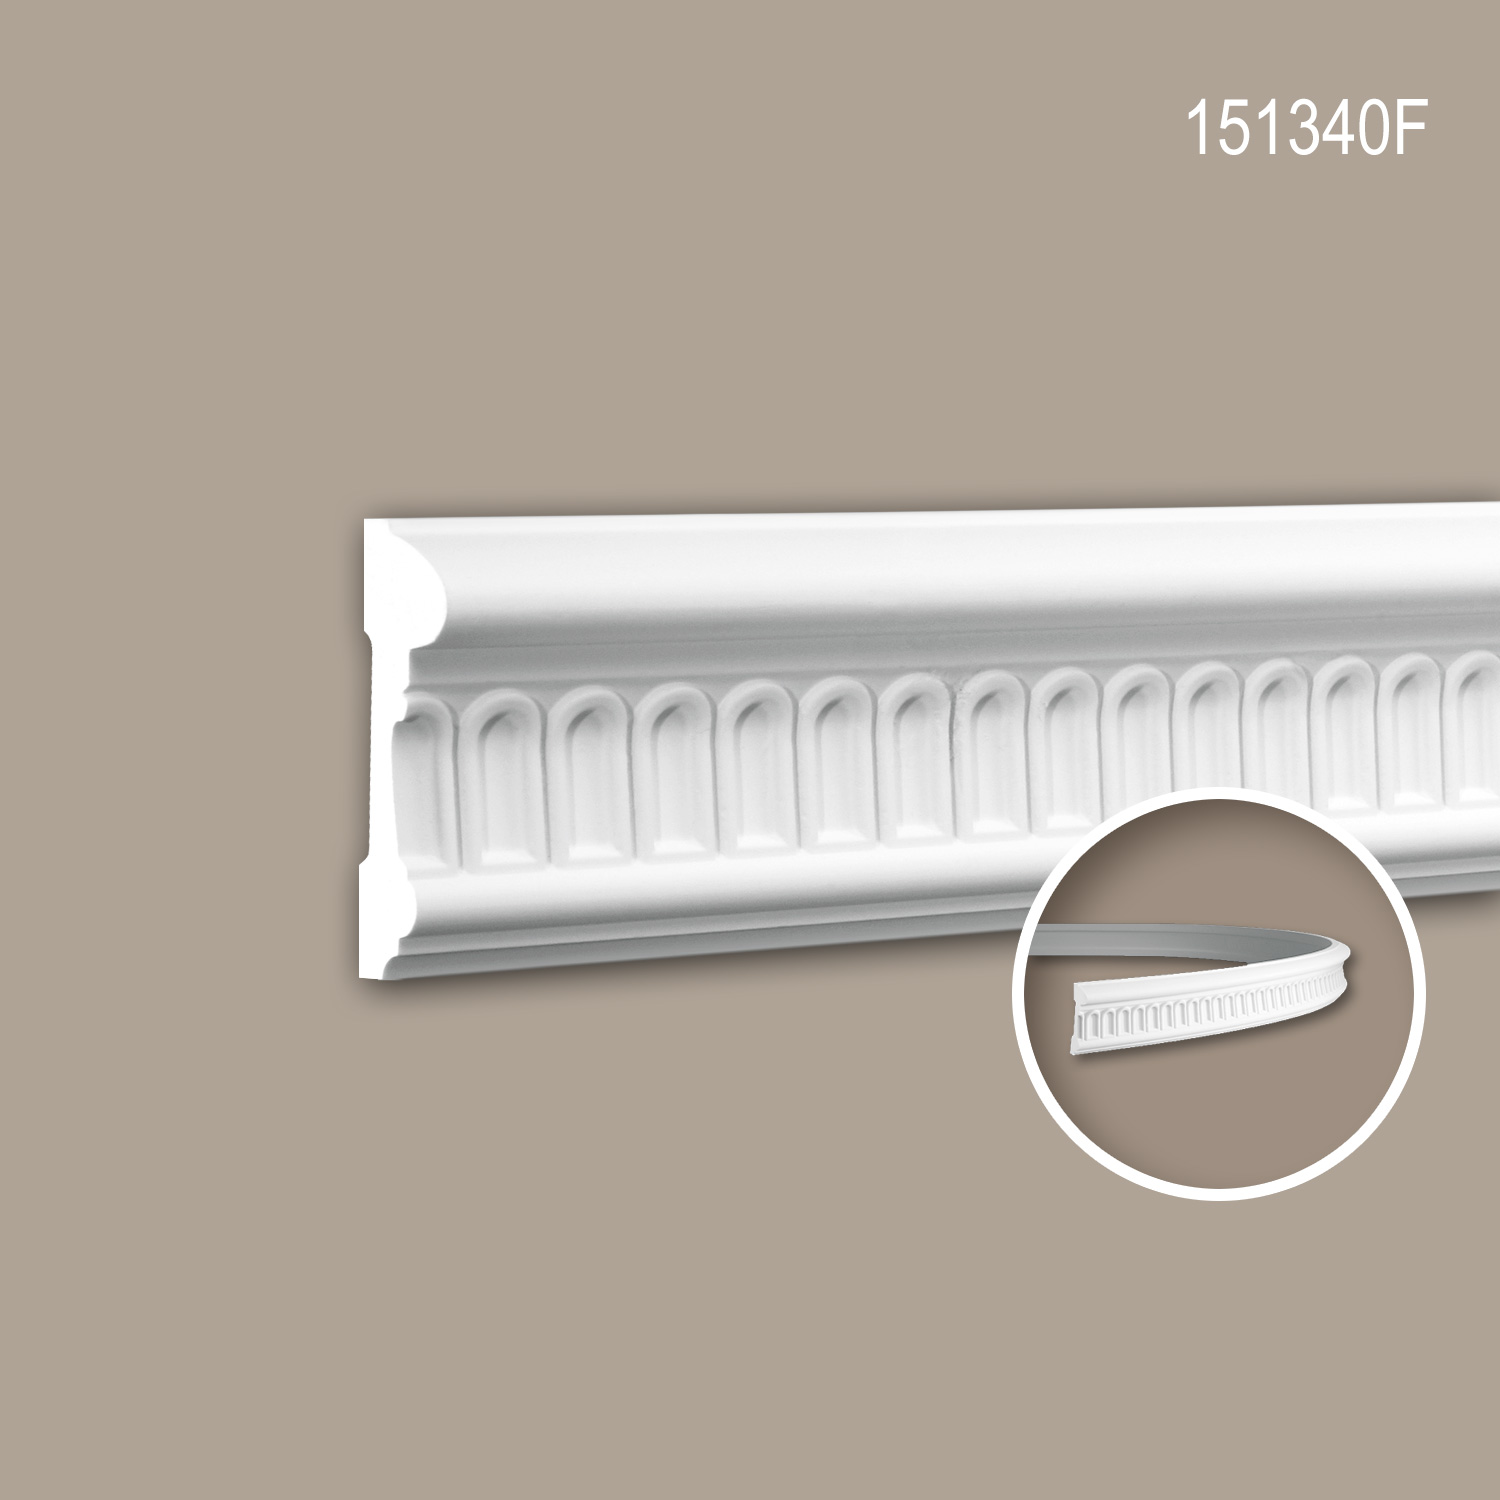 Panel Moulding Moulding For Decoration Flexible Moulding Decorative Moulding 2 M 151340f Profhome Ceres Webshop